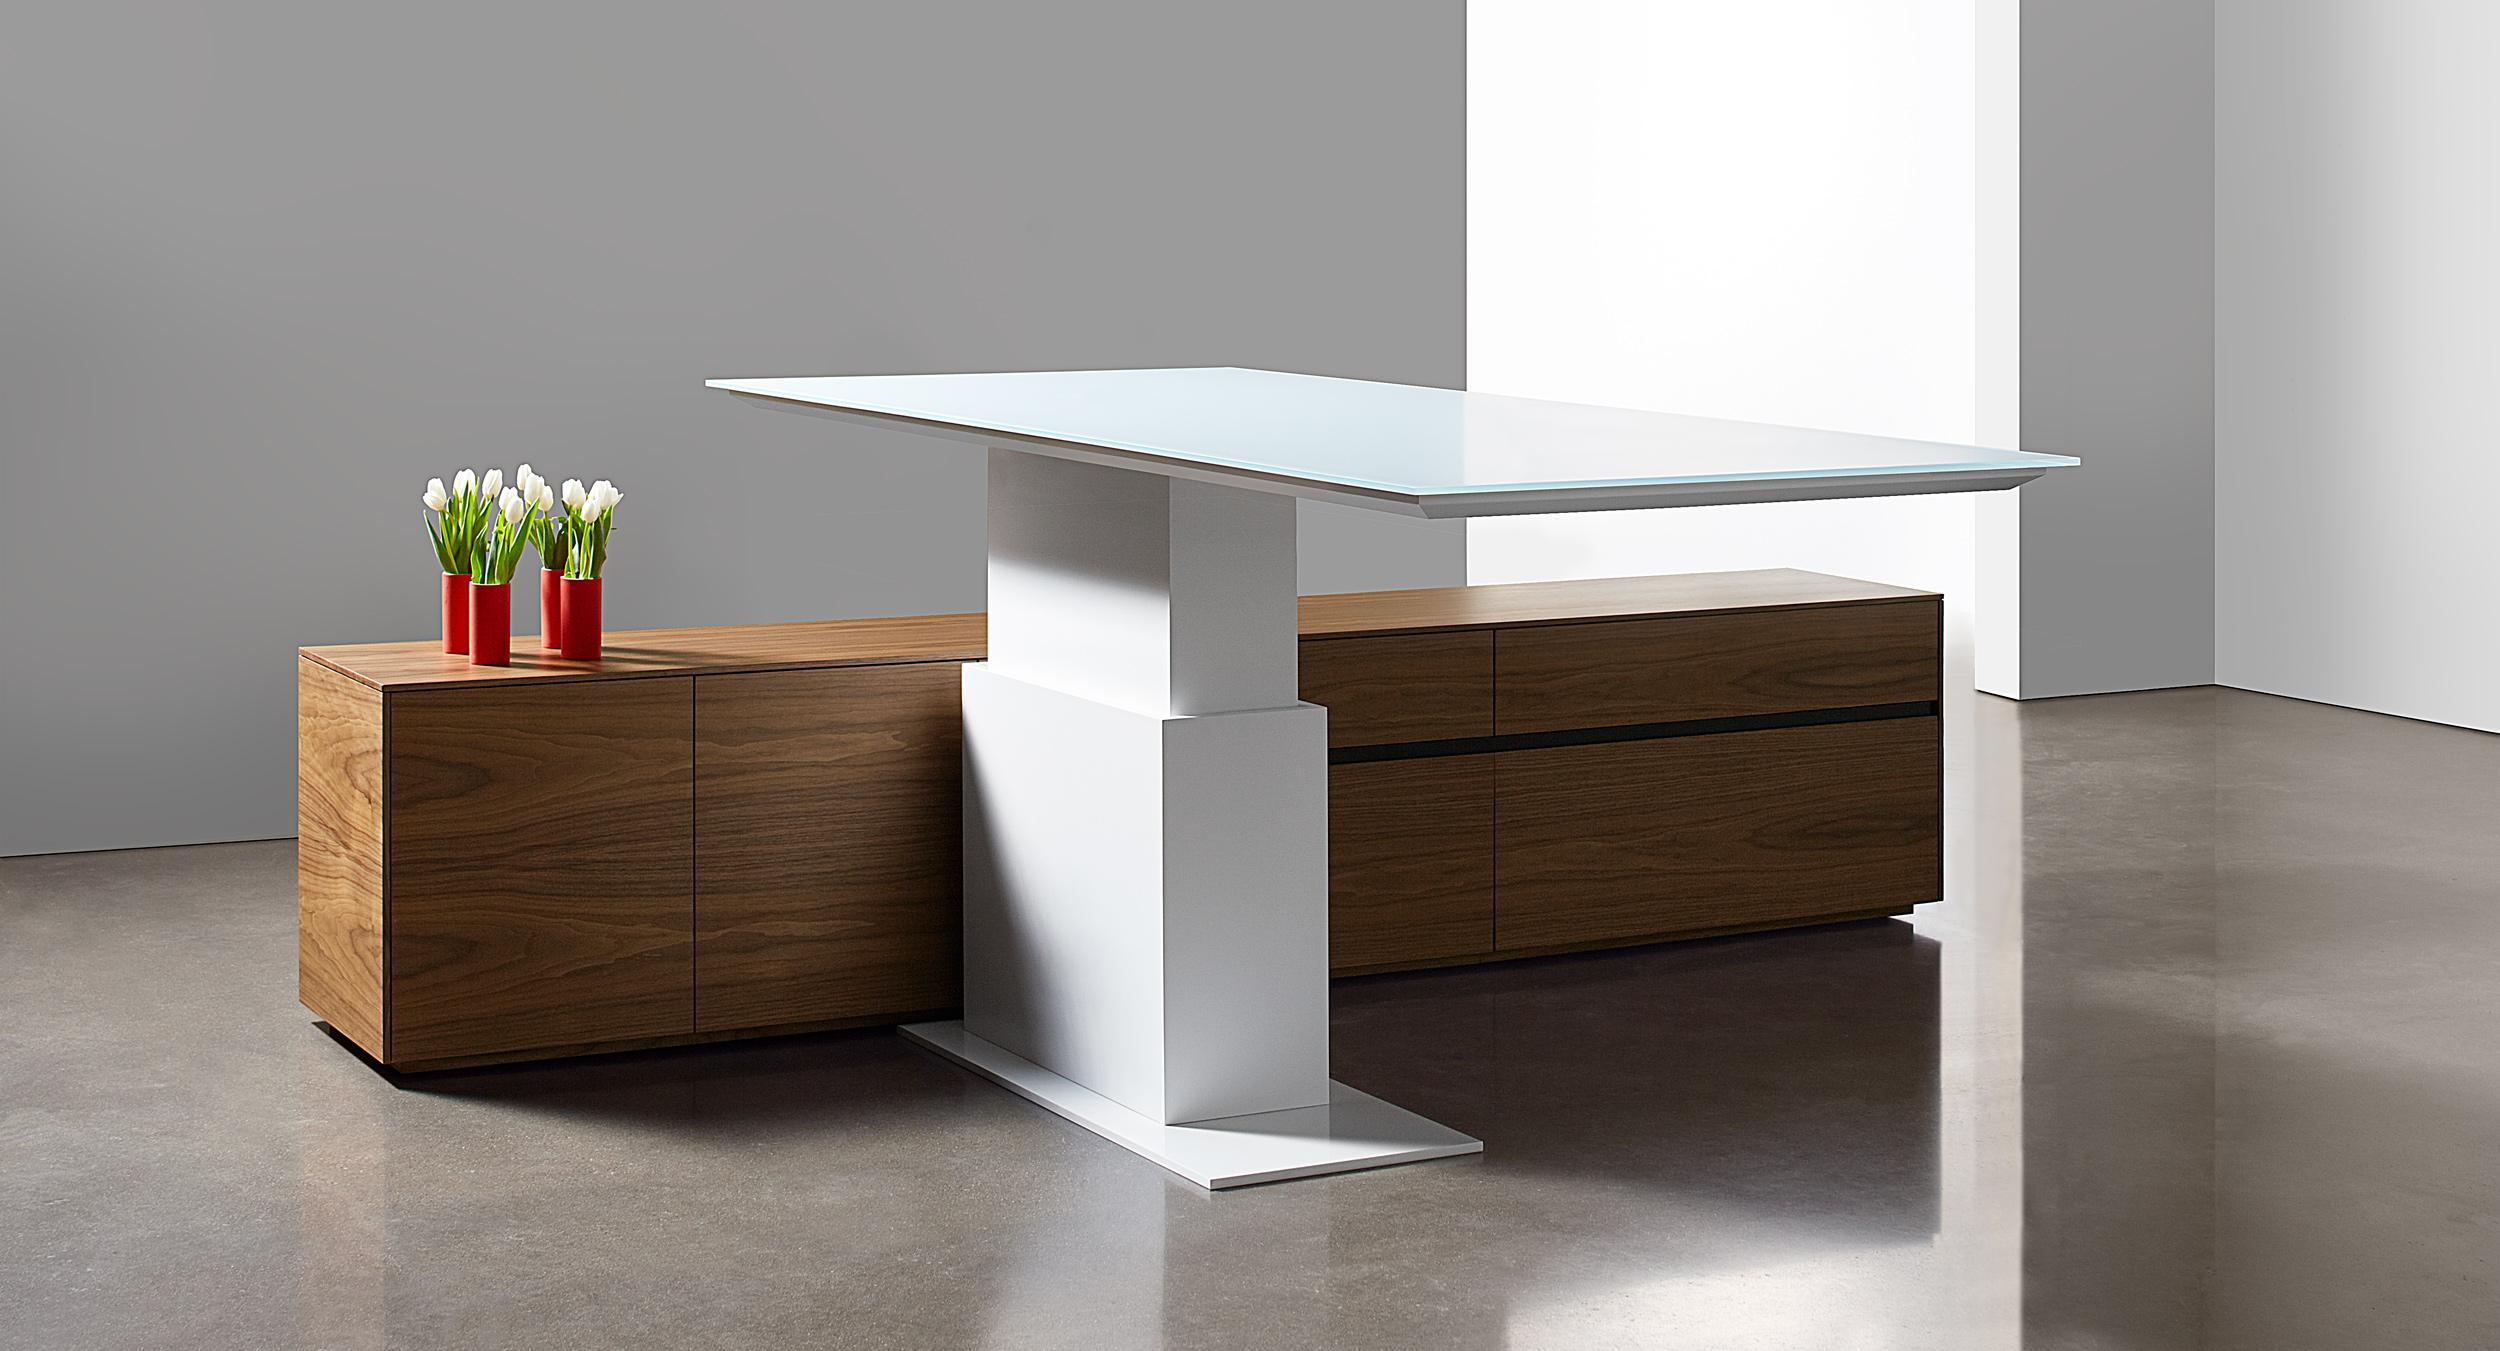 This adjustable-height desk features a cantilevered surface and refined minimalism.